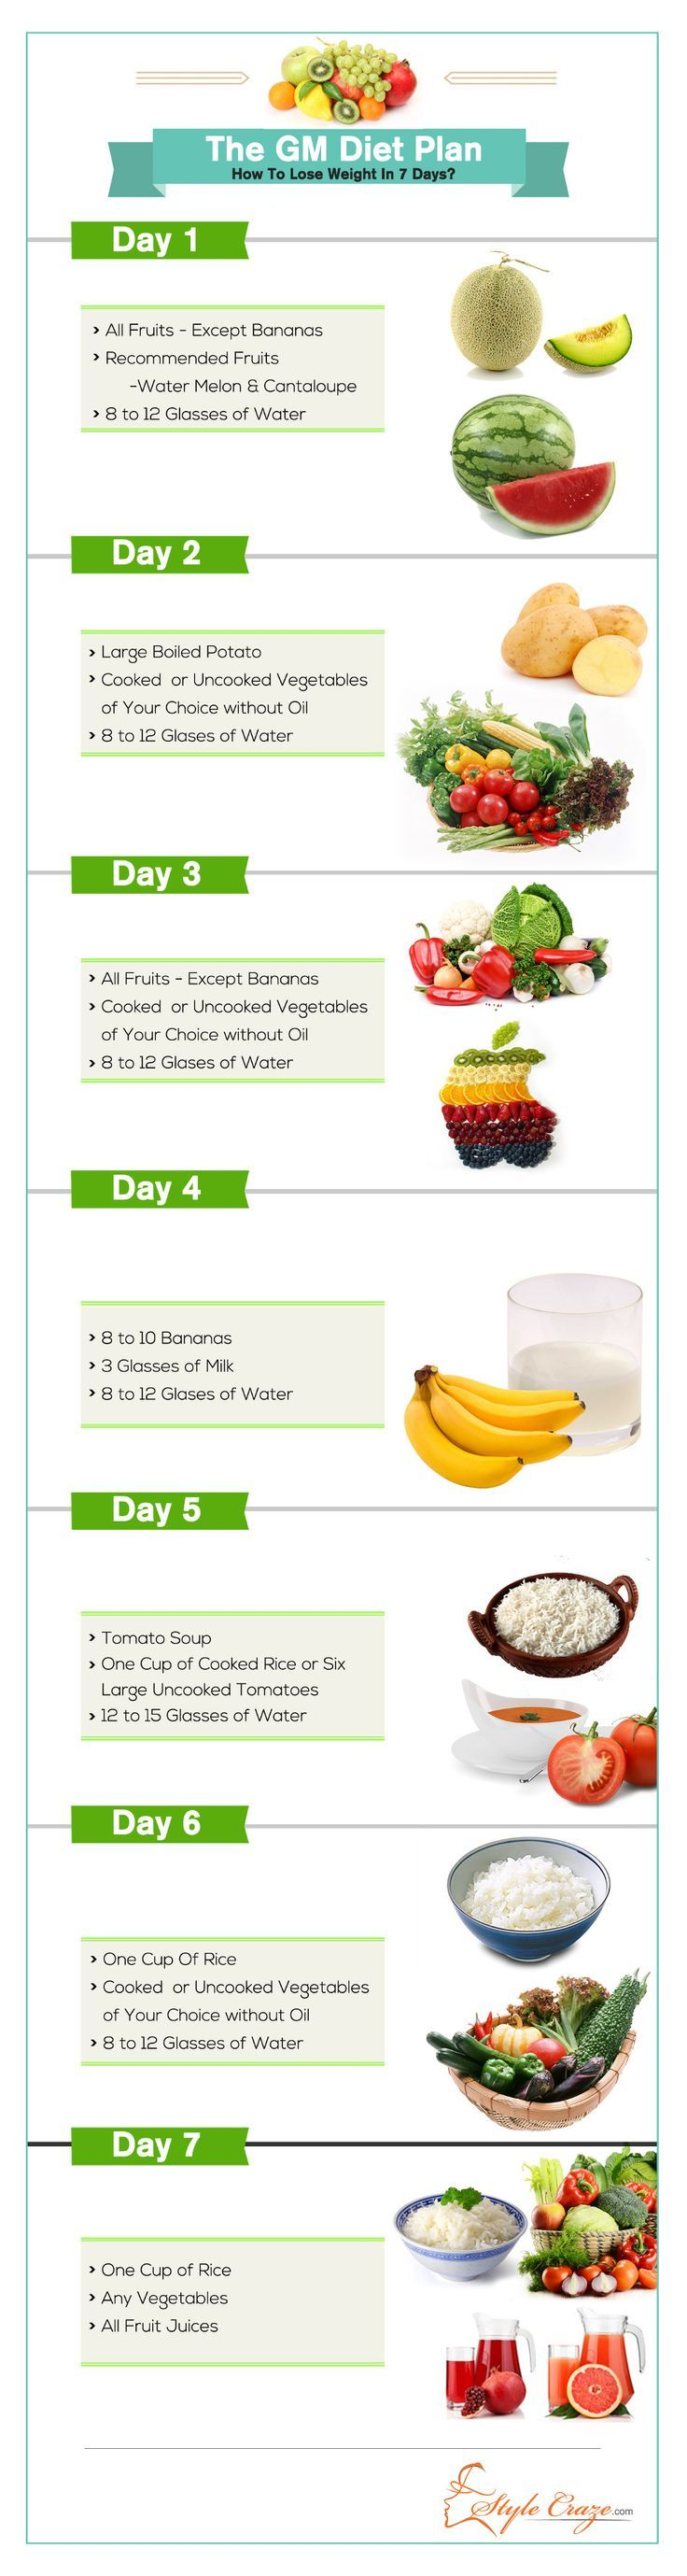 The GM Diet Plan: How To Lose Weight In Just 7 Days? http://papasteves.com/